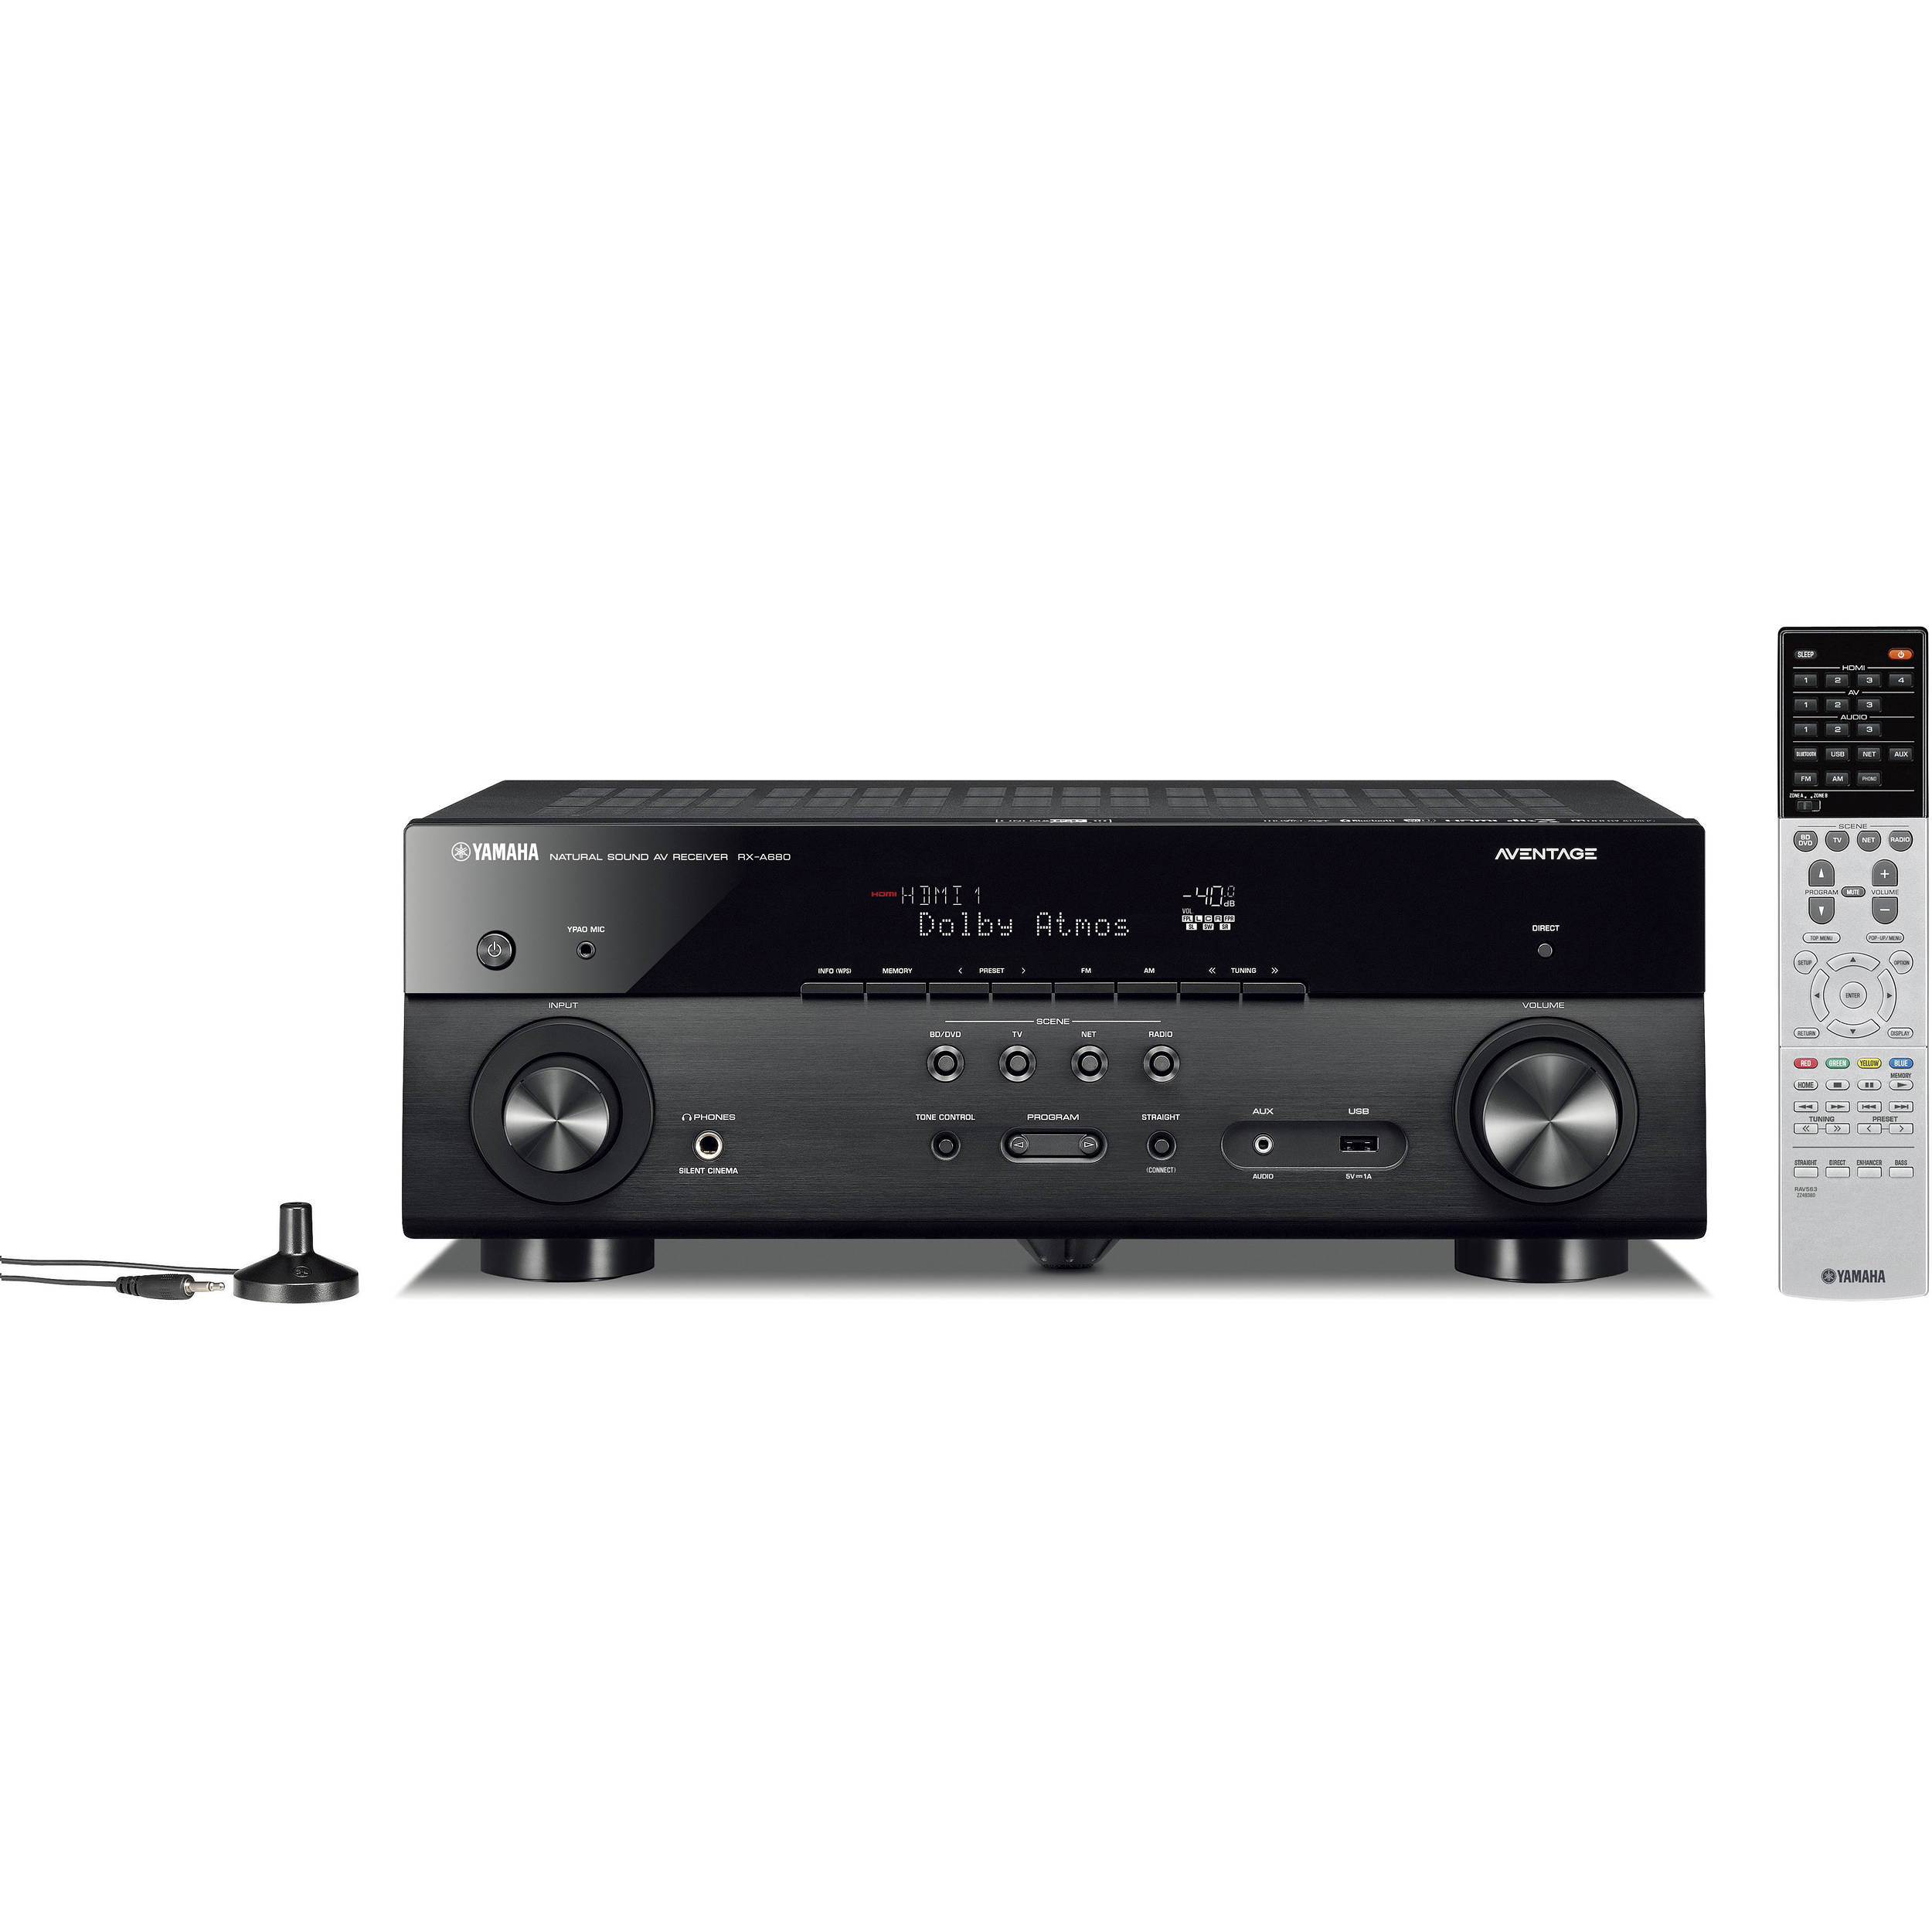 Yamaha AVENTAGE RX-A680 7 2-Channel Network A/V Receiver